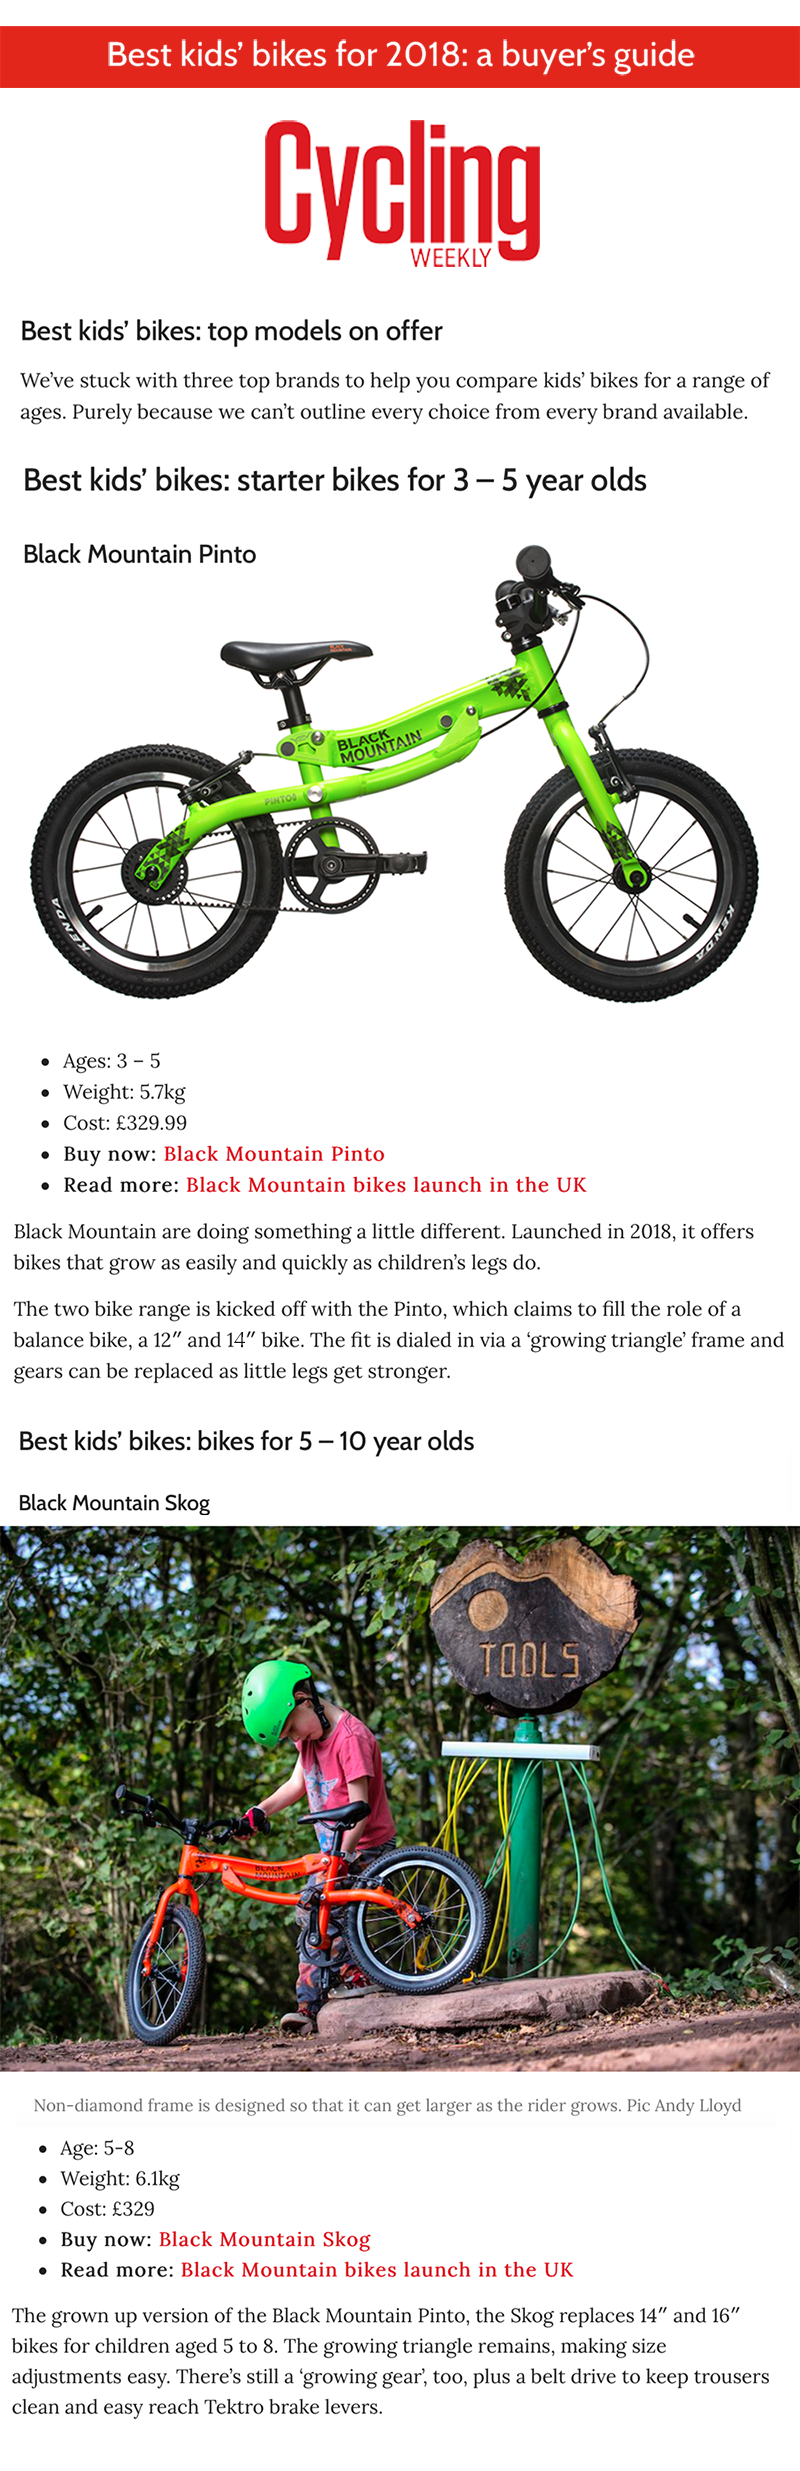 Cycling Weekly Best Kids' Bikes 2018 Black Mountain